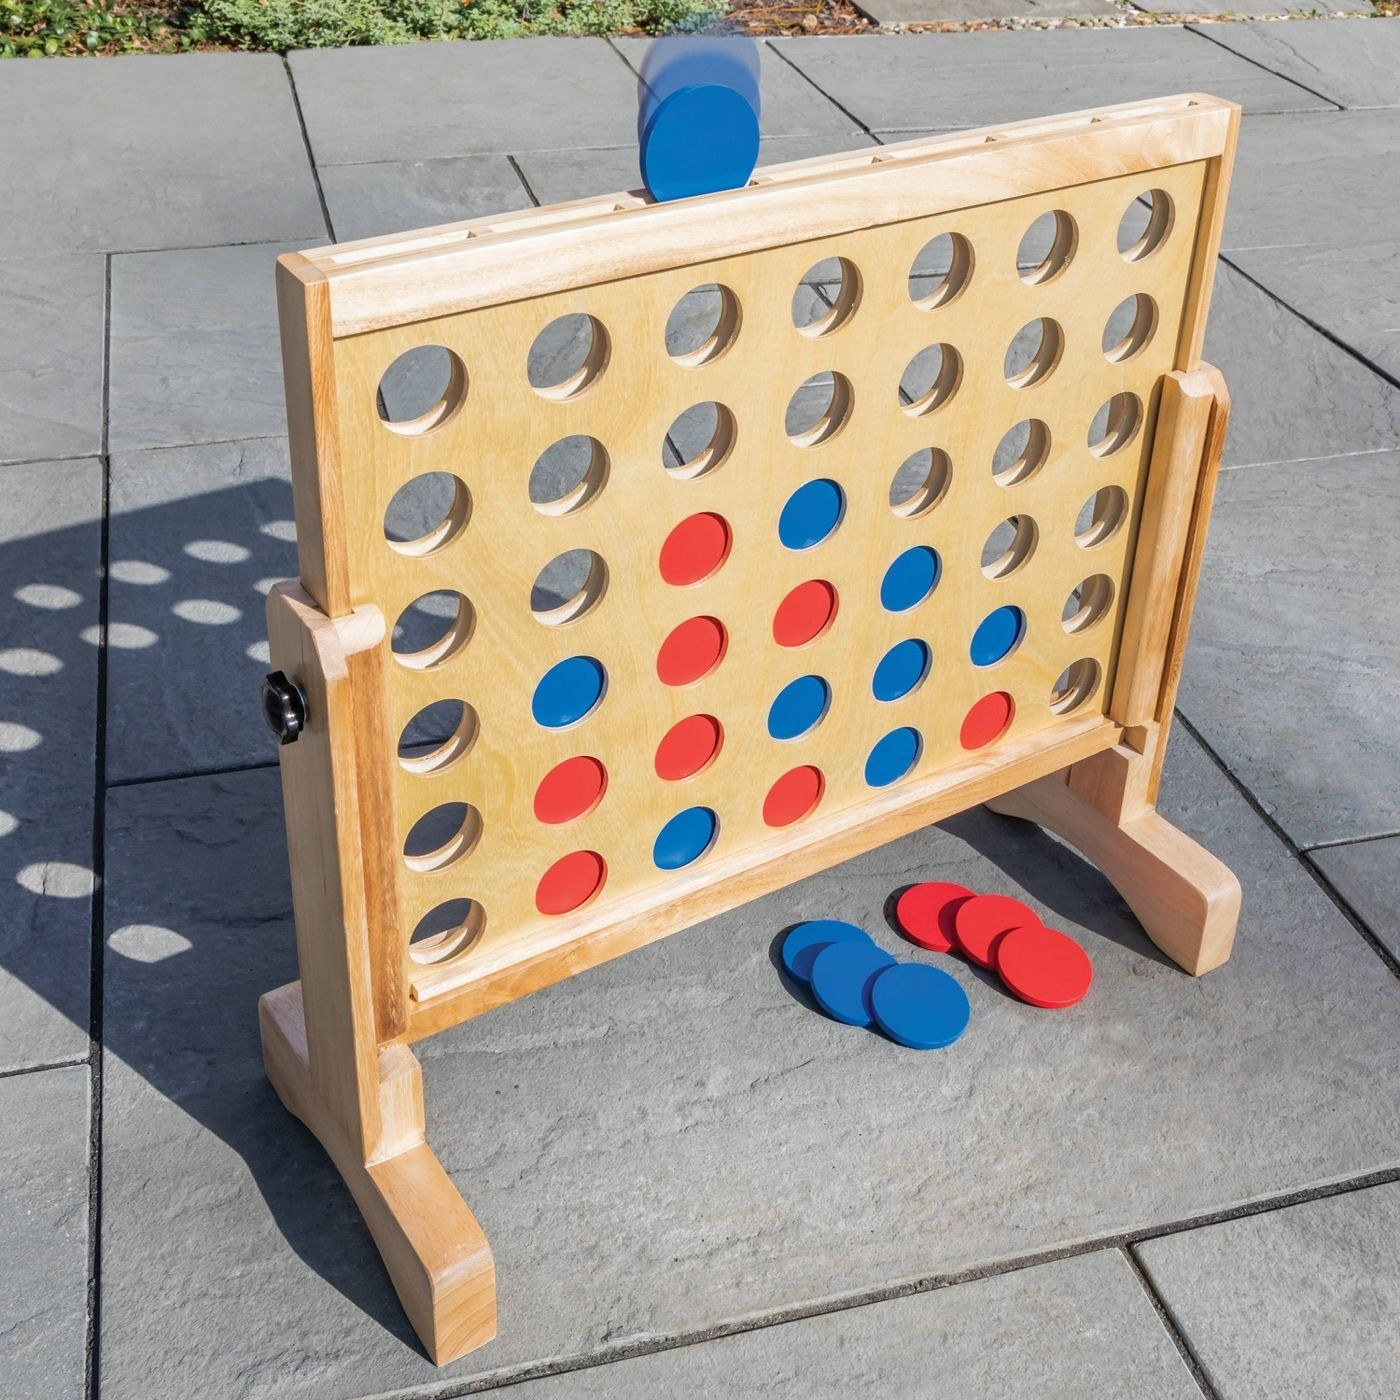 A large wooden connect four board with blue and red discs